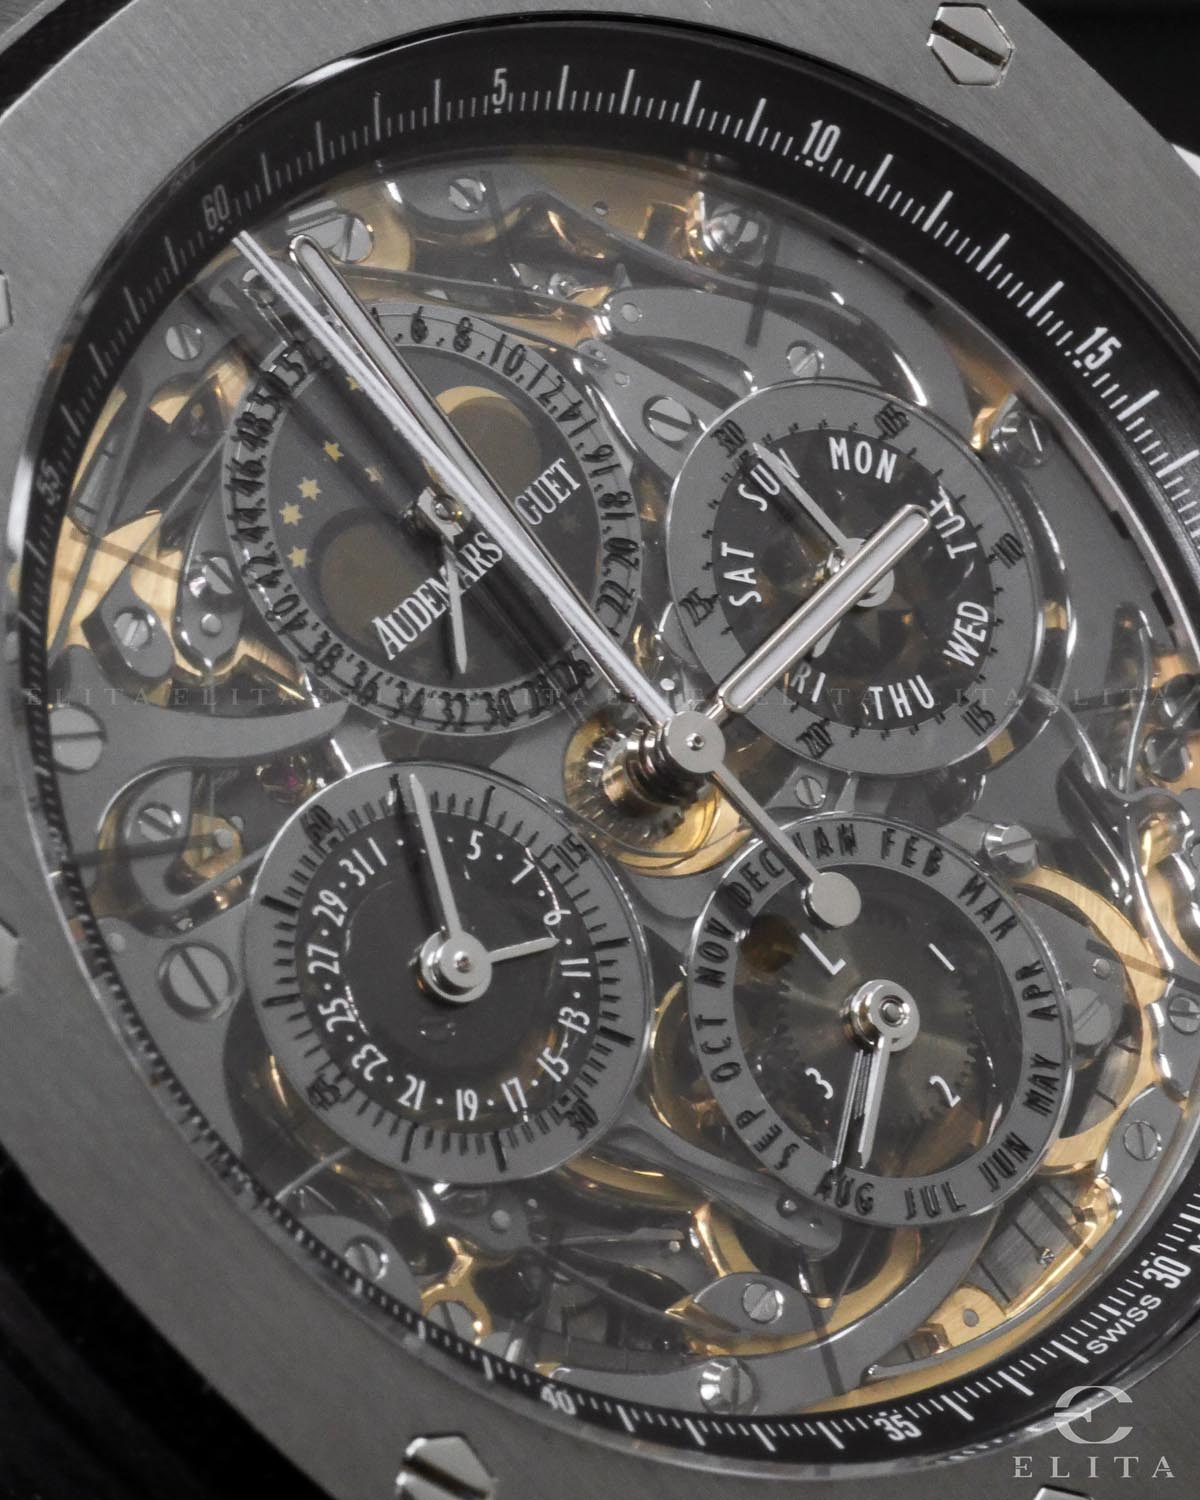 Royal Oak Grande Complication 26065IS.OO.1105IS.01 Titanium